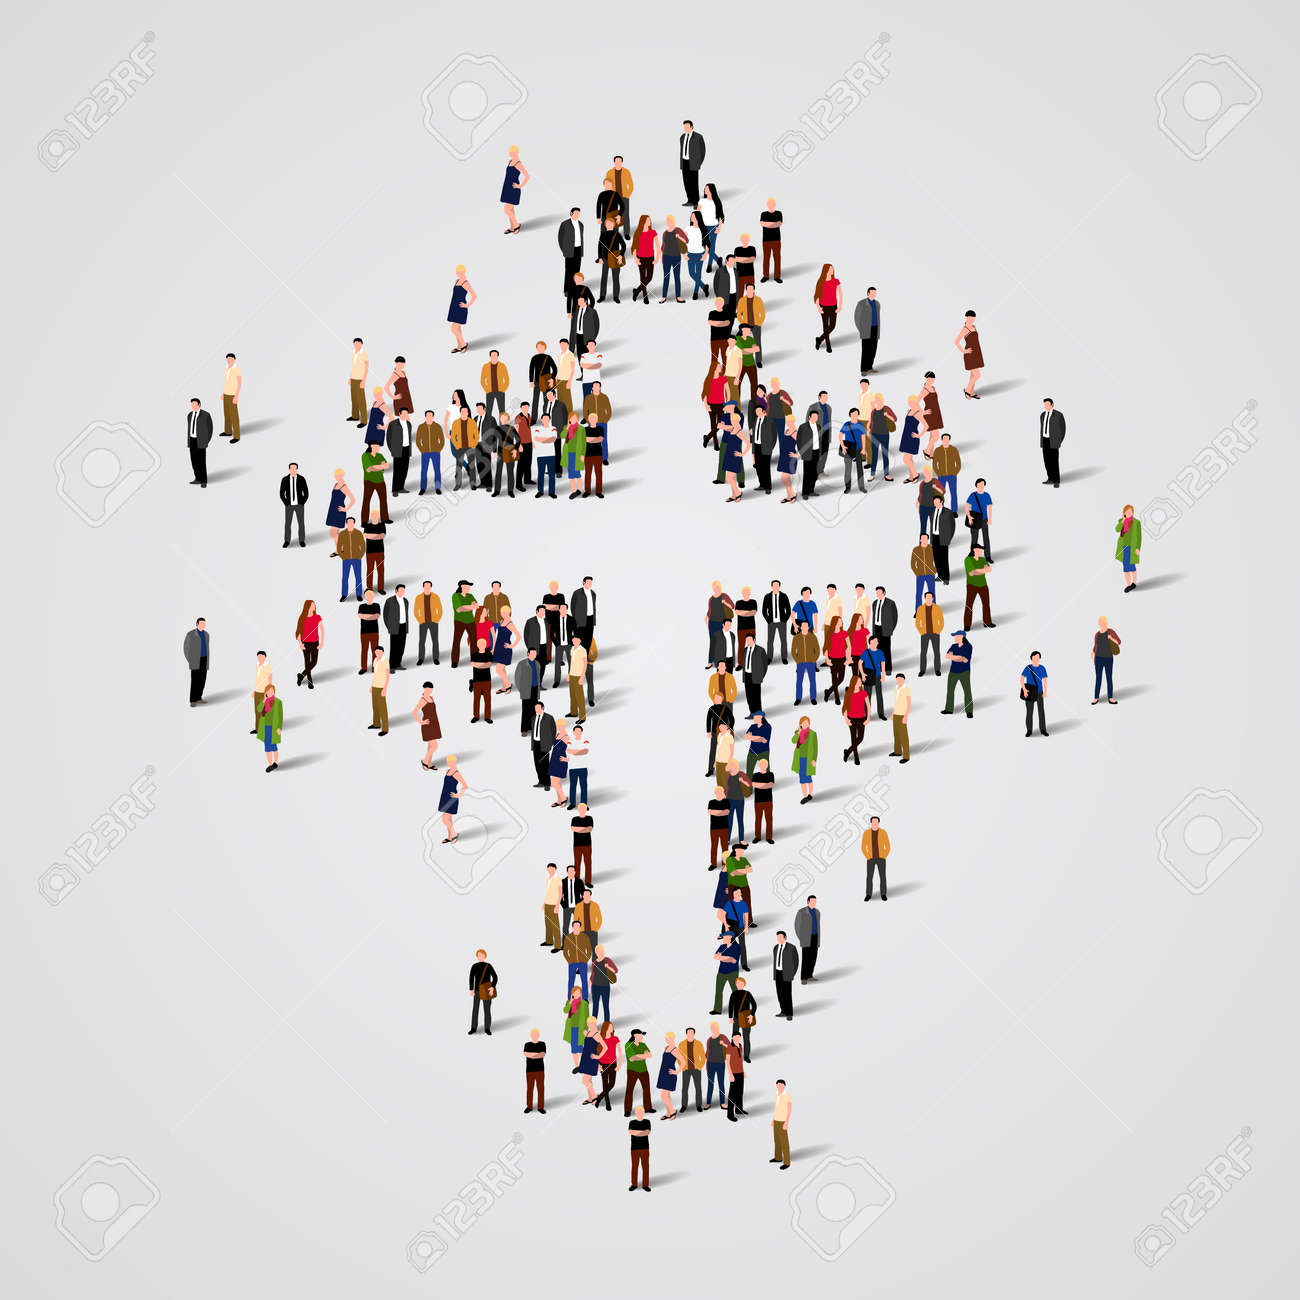 Large group of people in the shape of cross. Vector illustration - 57806818